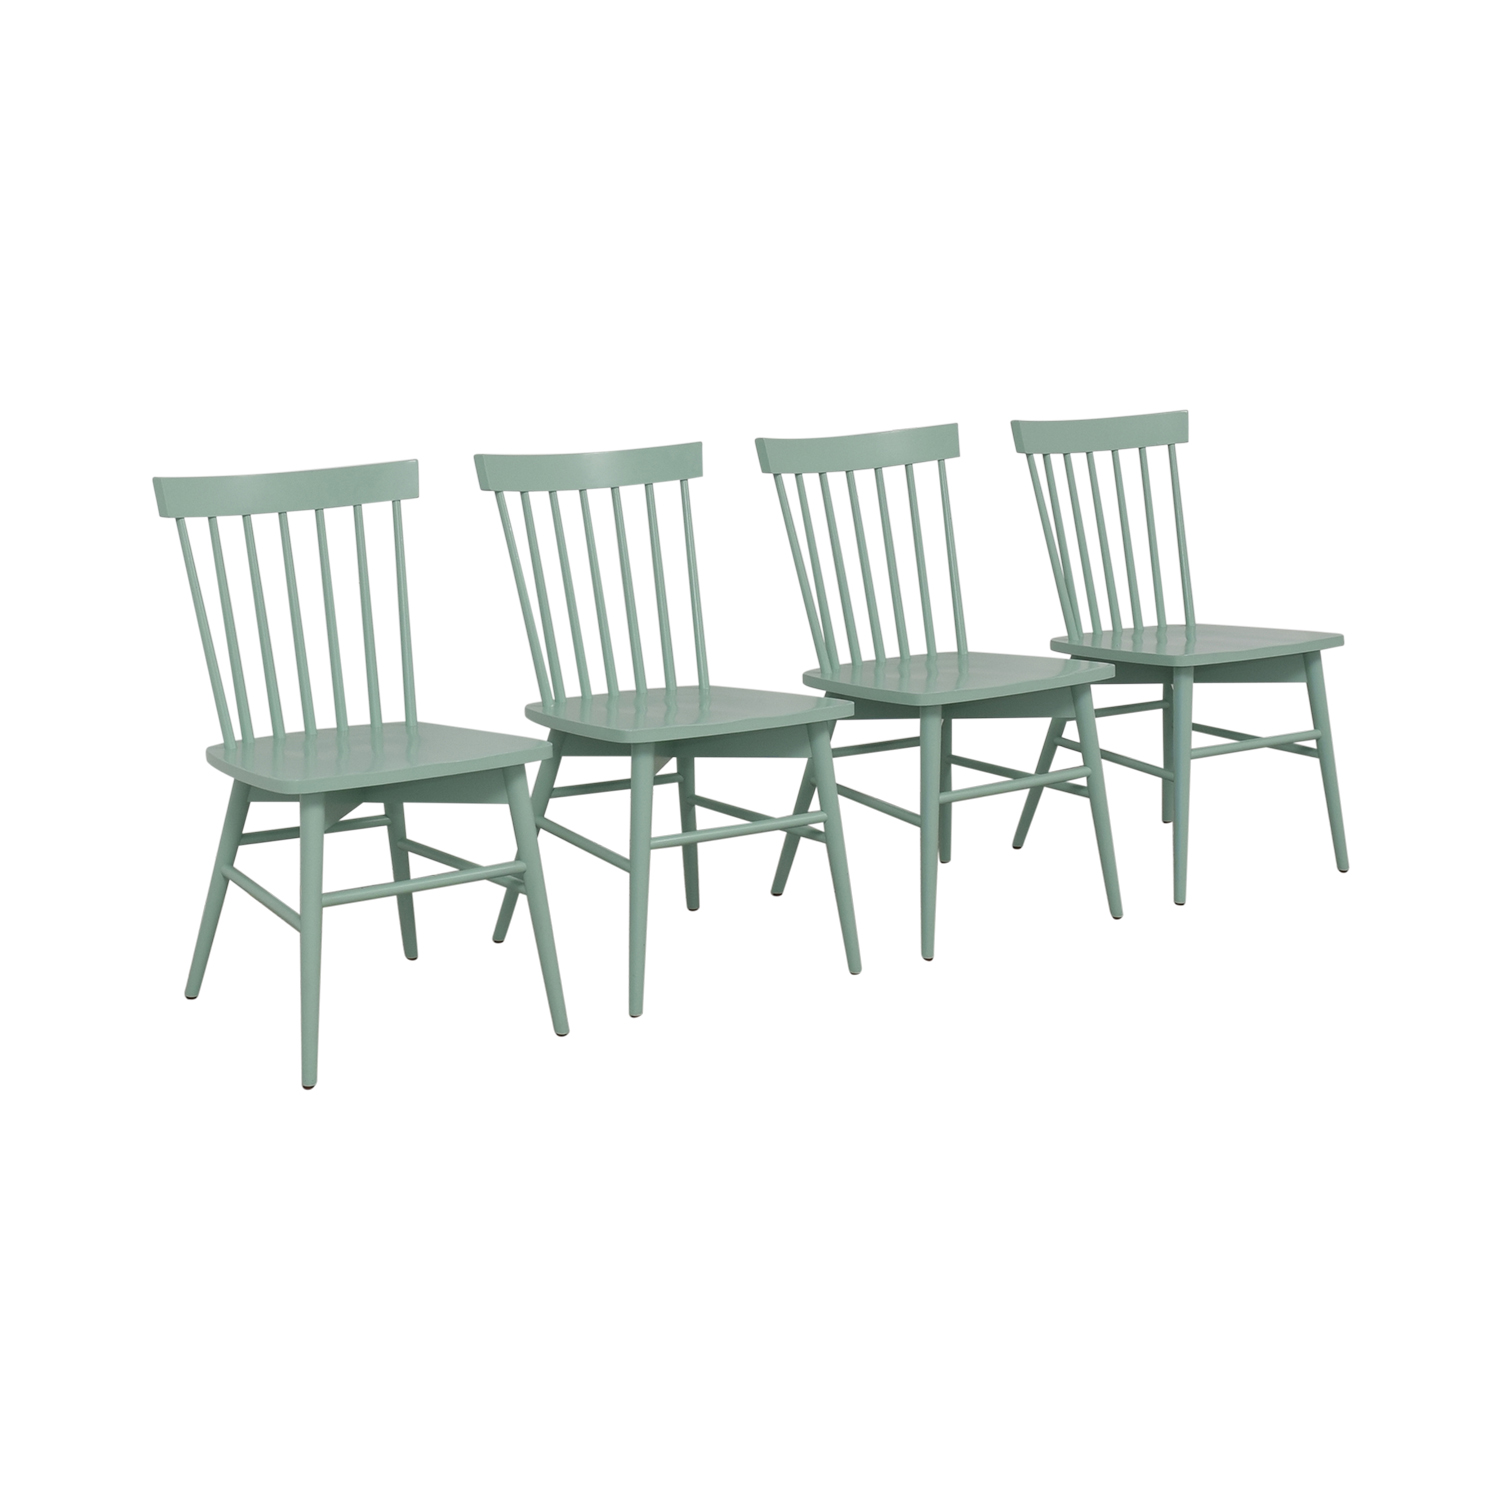 Target Set of Dining Chairs / Dining Chairs